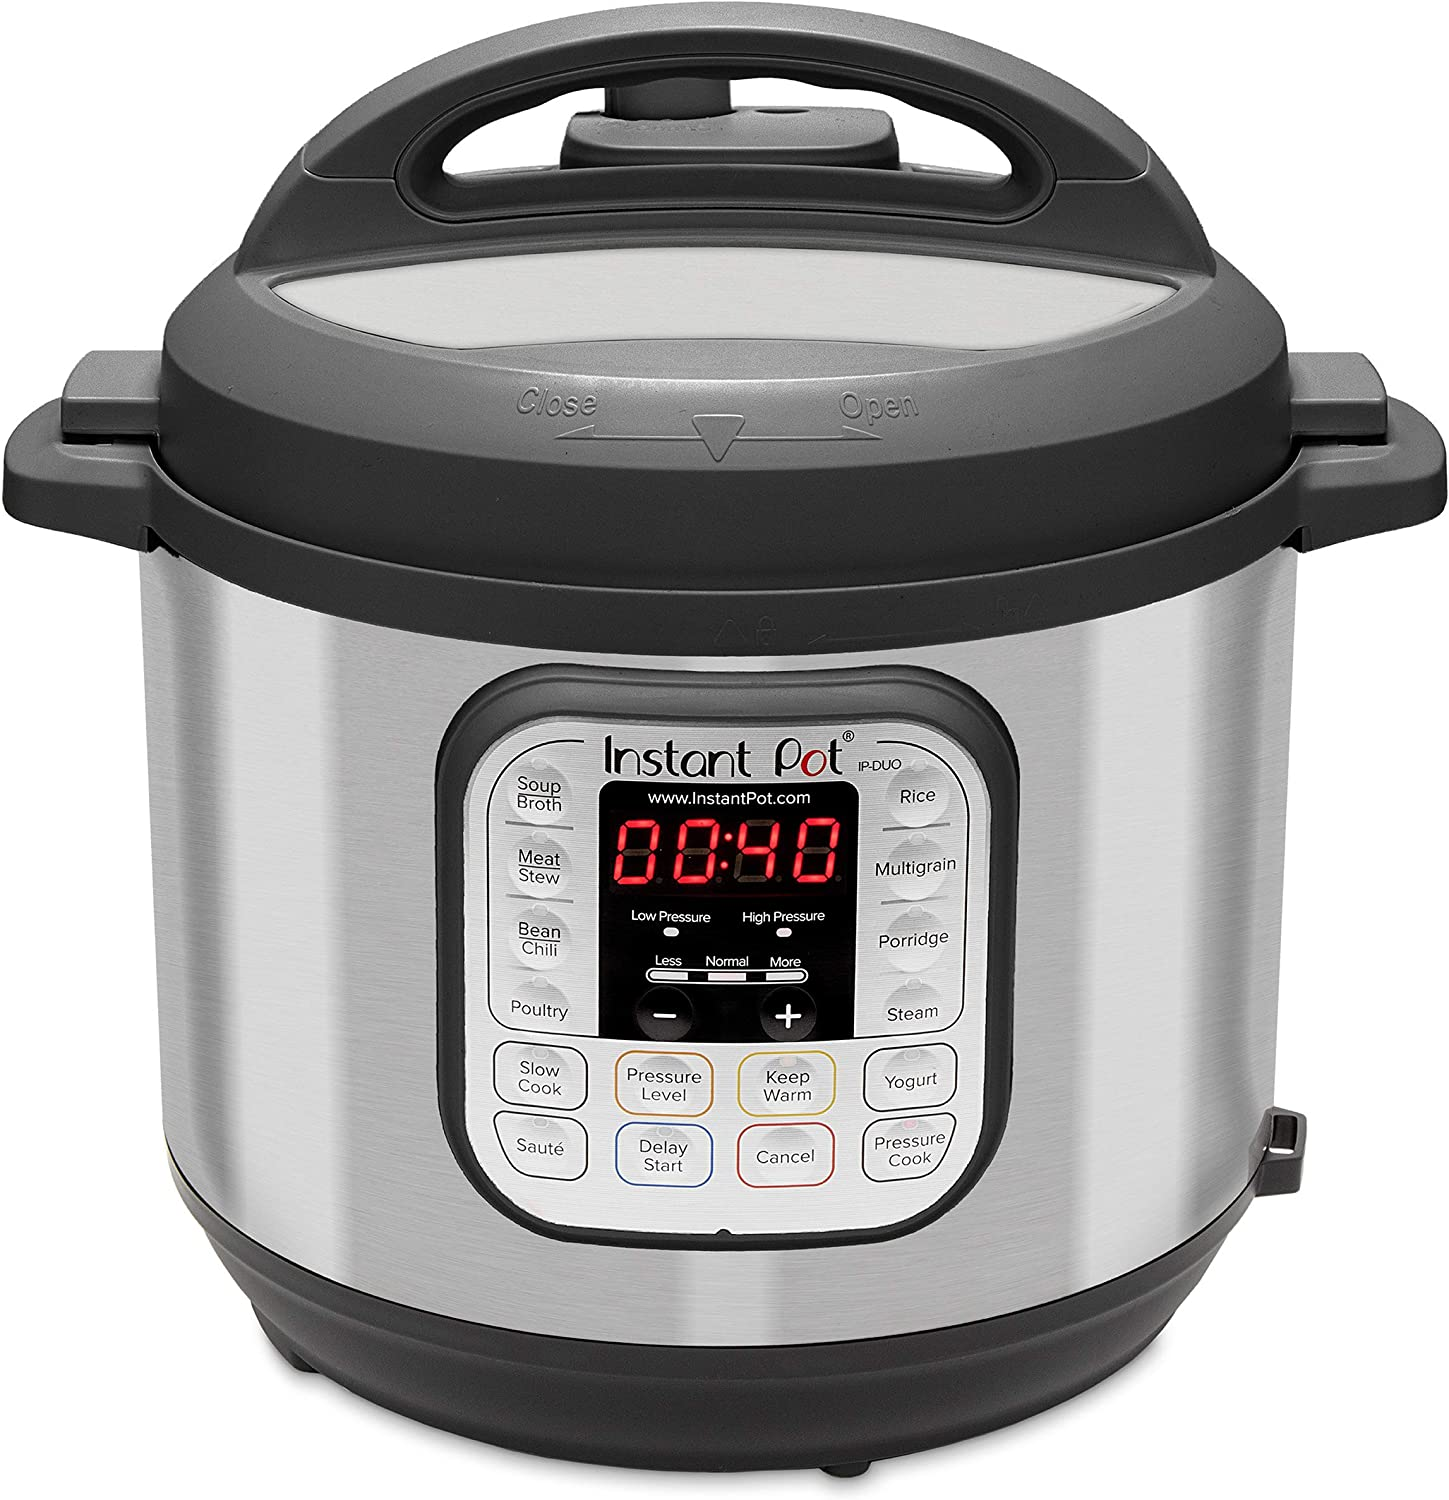 The Best Pressure Cooker - Our pick